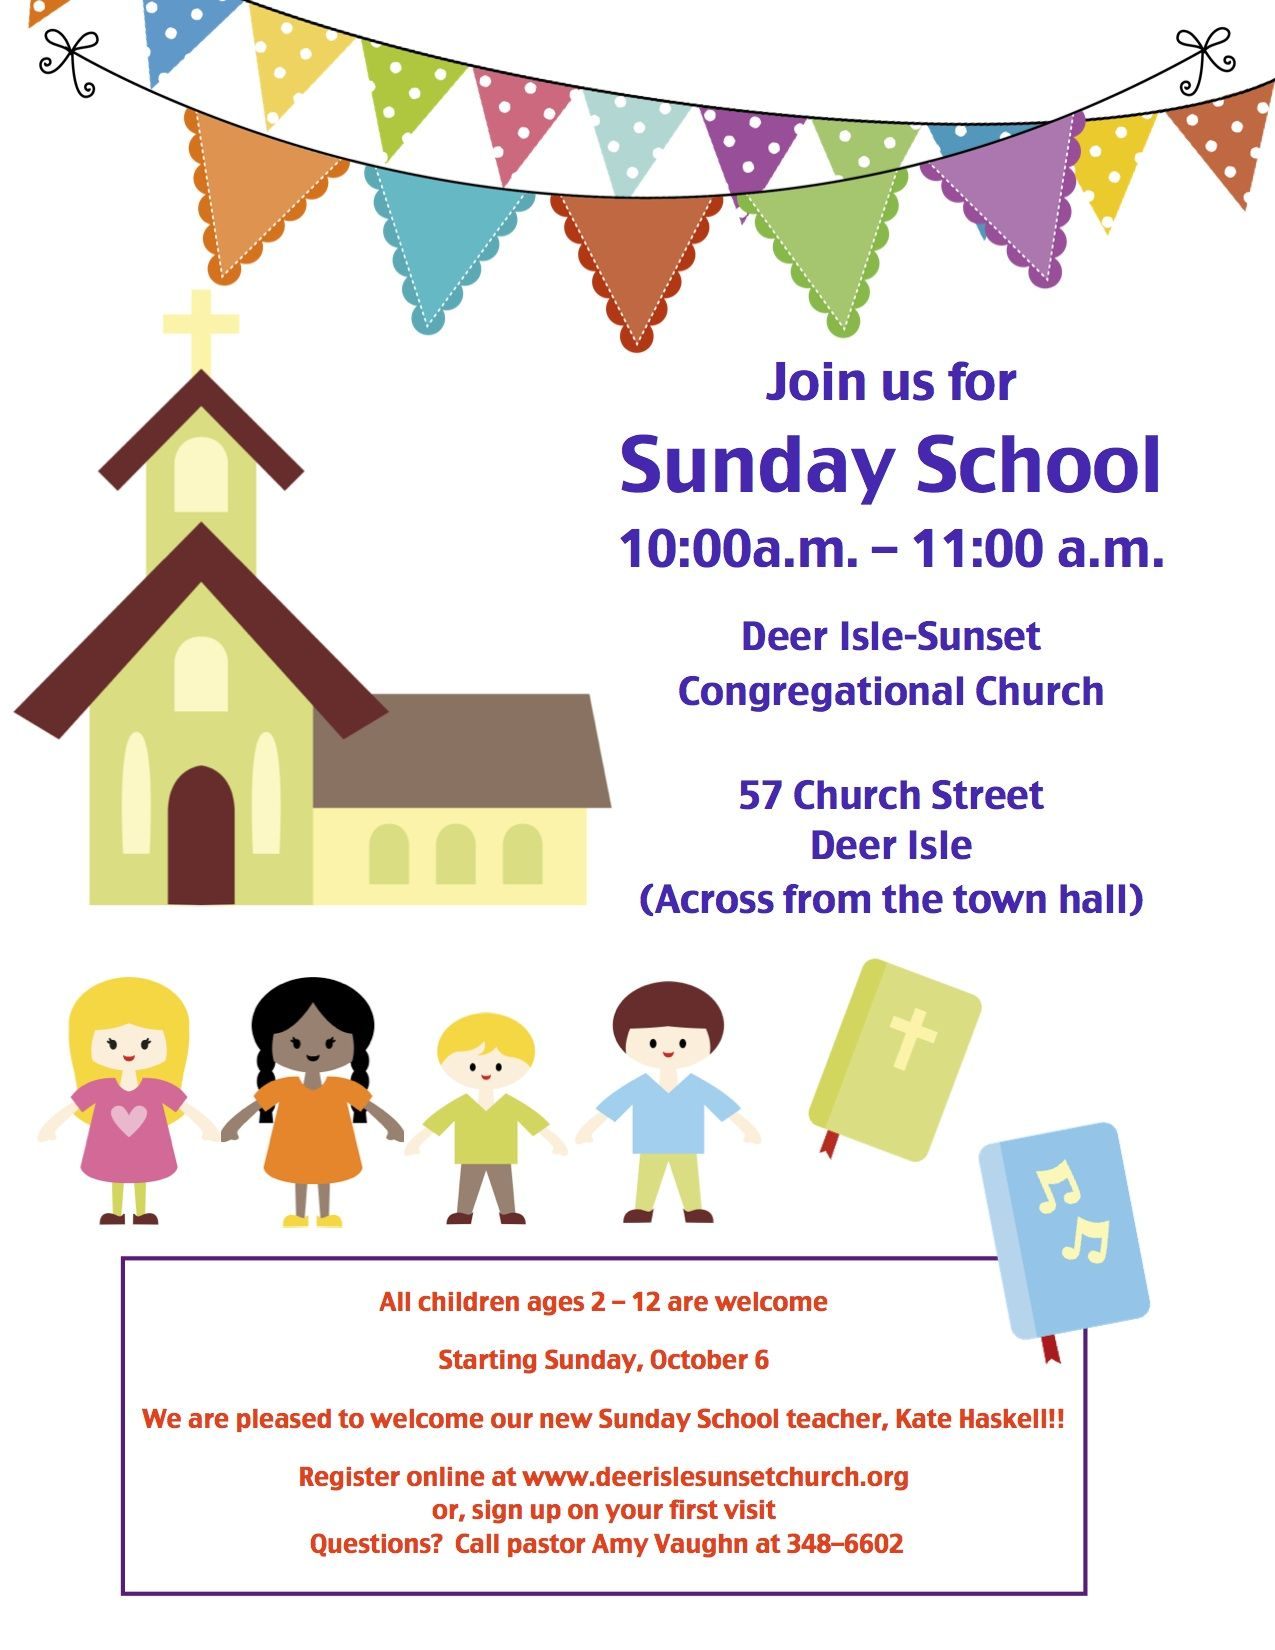 Sunday School Invitation Flyer  Google Search  Childrens Church